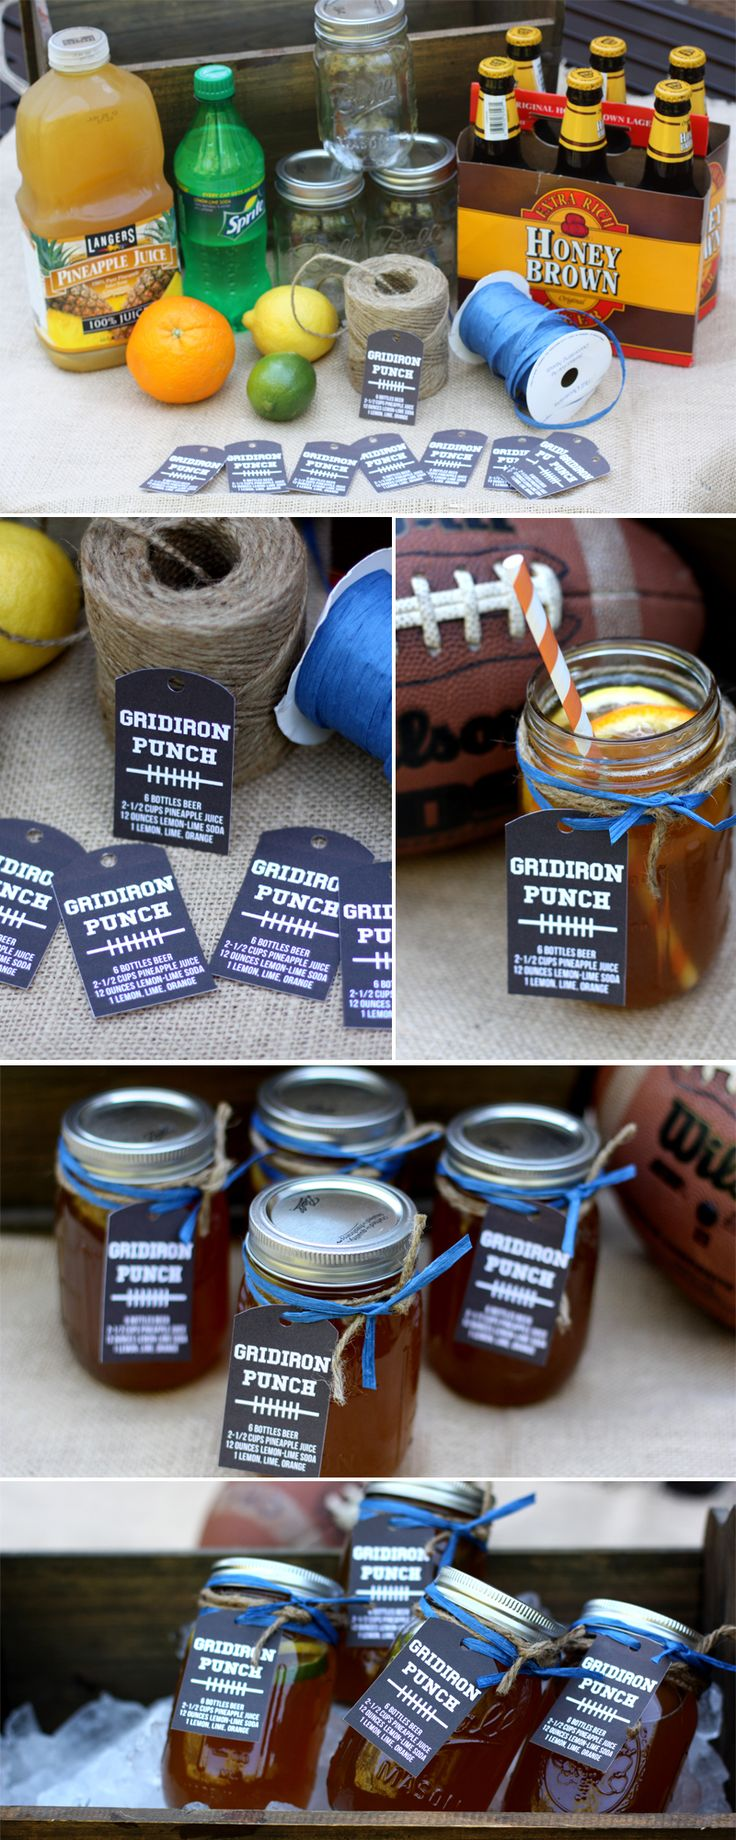 Guest blogger Pizzazzerie shares with us her Gridiron Punch